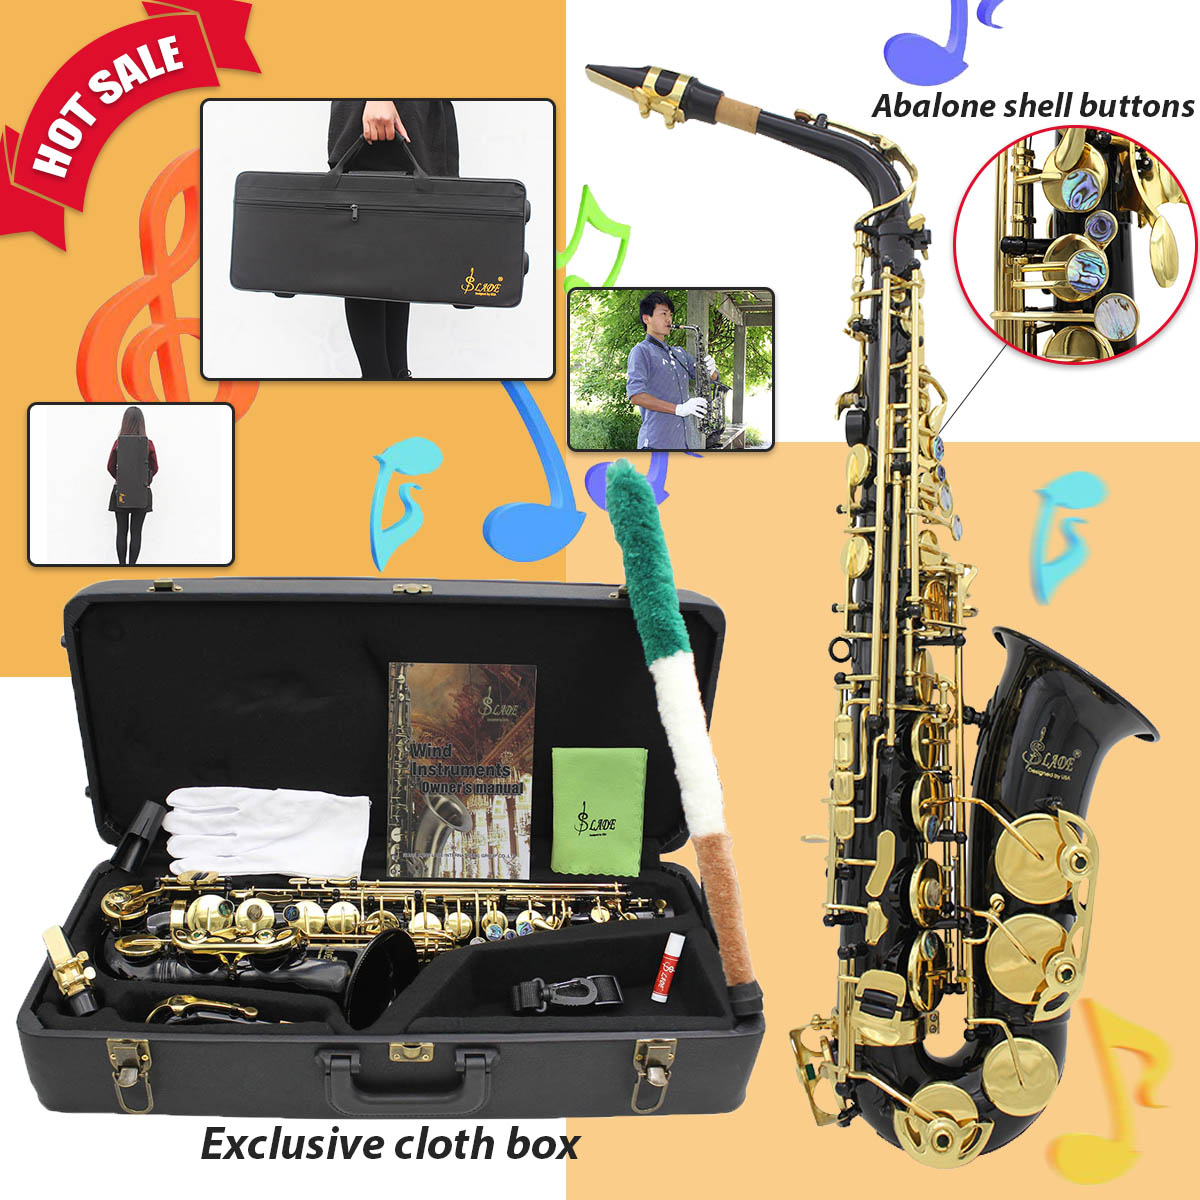 Brass Engraved Eb E-Flat Alto Saxophone Sax Abalone Shell Buttons With Case Gloves Cleaning Cloth Belt Brush alto saxophone 54 eb flat alto sax top musical instrument sax wear resistant black nickel plated gold process sax